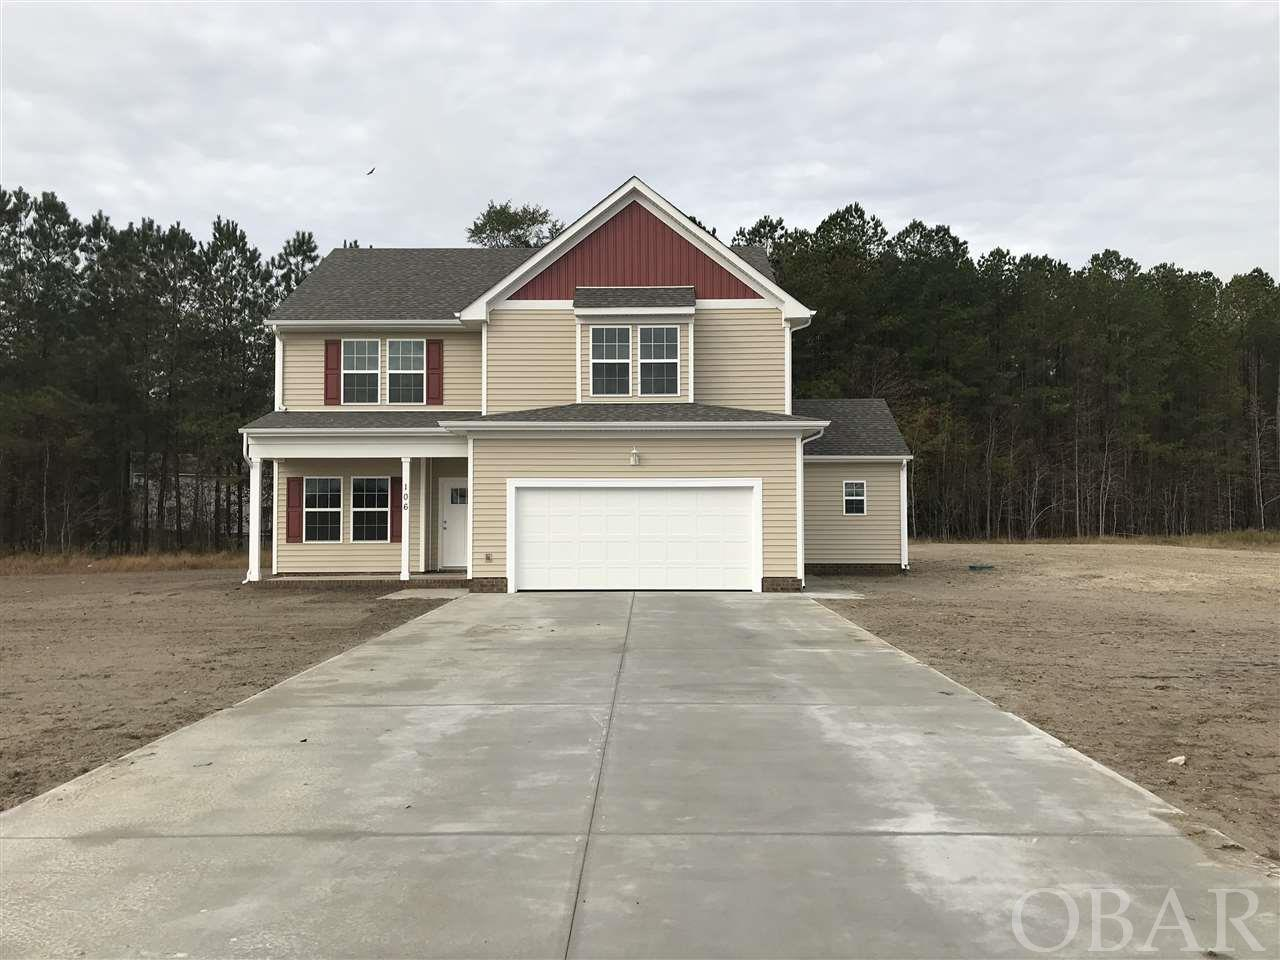 106 Atkinson Court,South Mills,NC 27976,5 Bedrooms Bedrooms,3 BathroomsBathrooms,Residential,Atkinson Court,100883